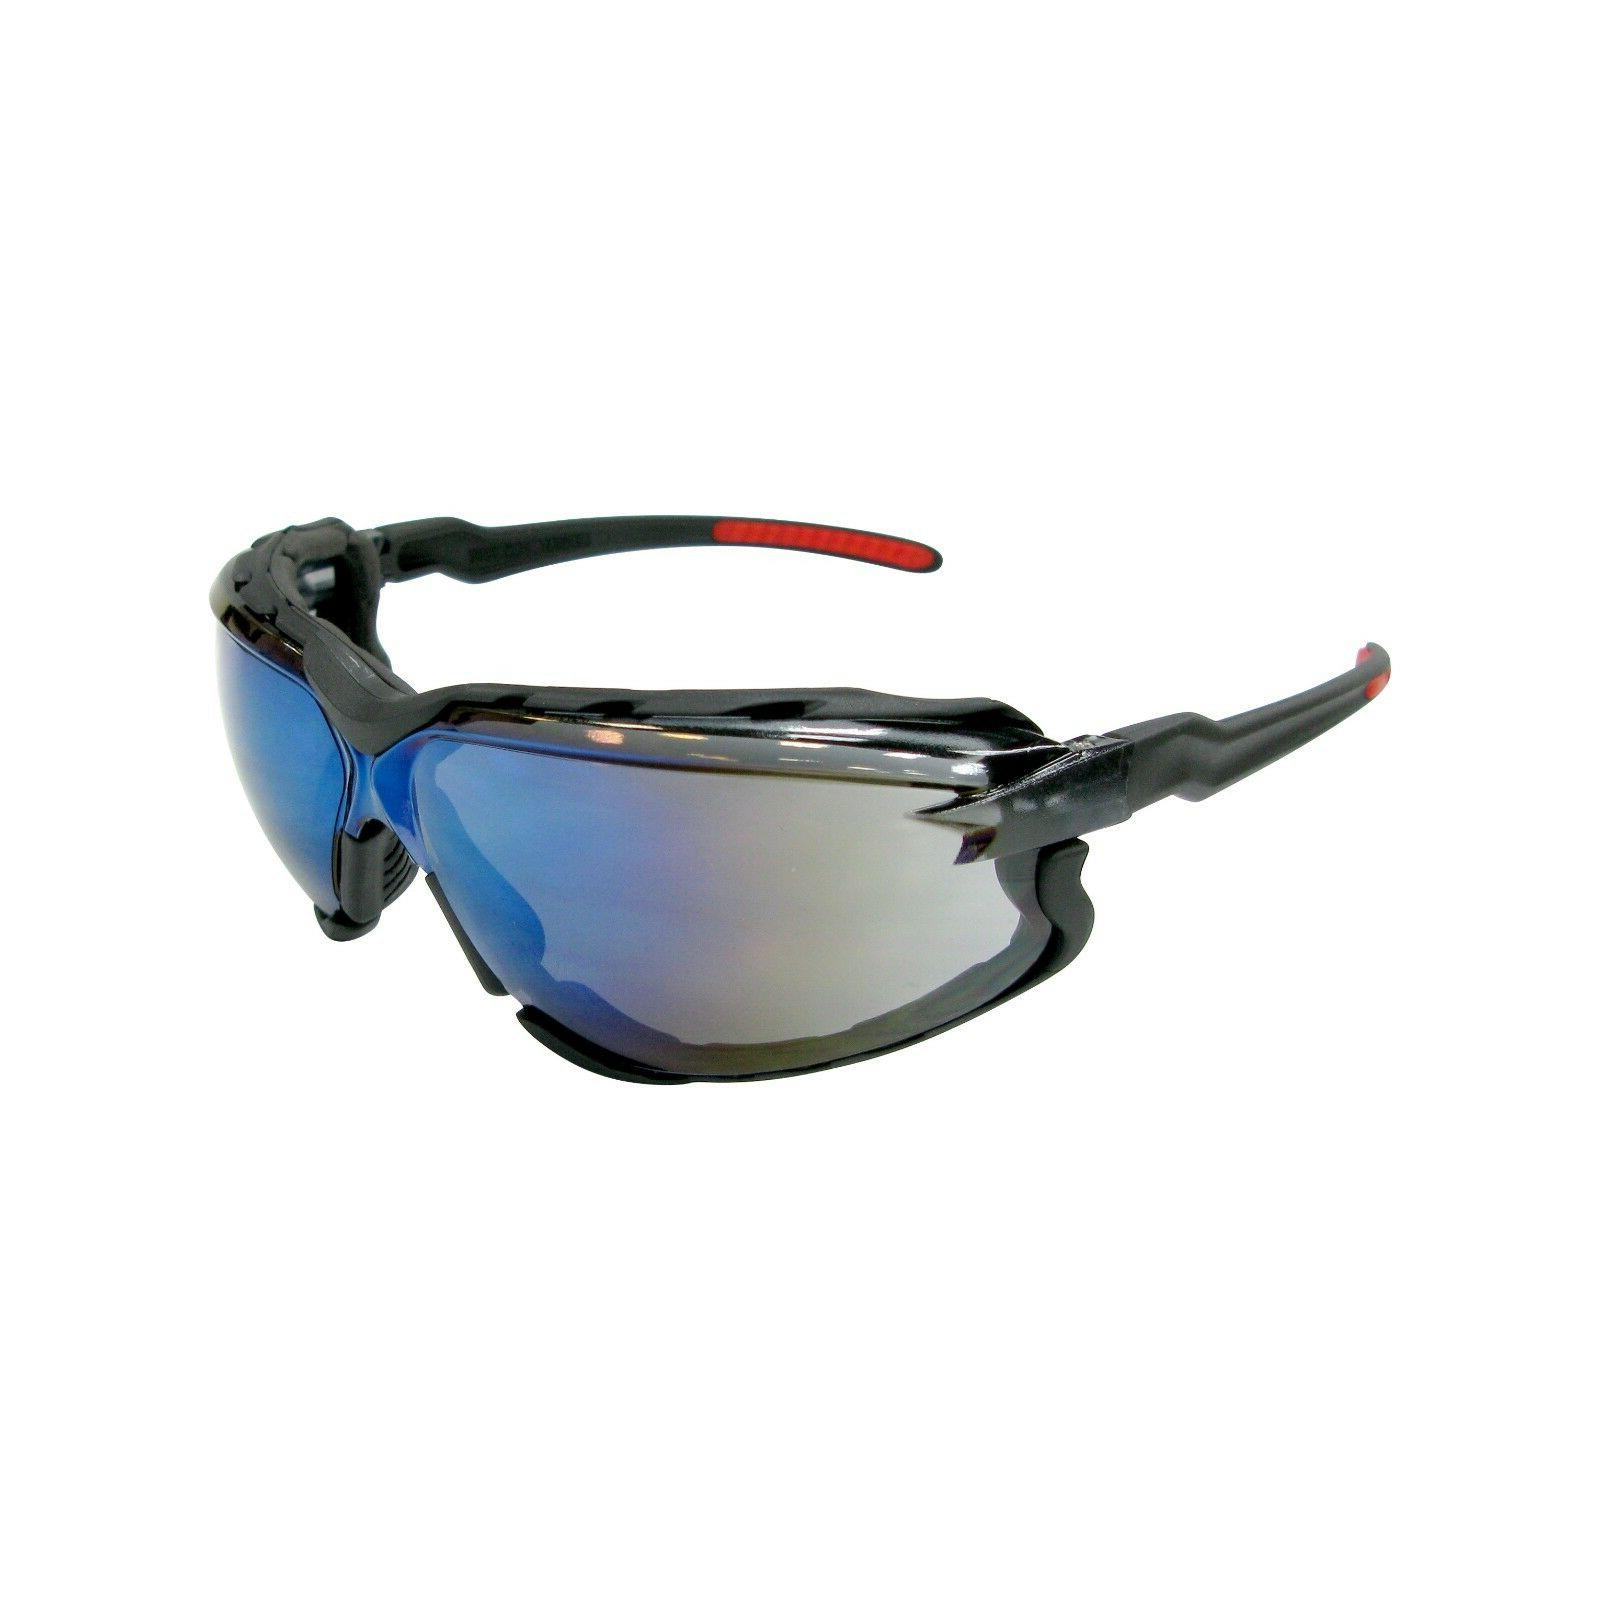 Falcon Safety Glasses with Removable Foam Lined Gasket and U